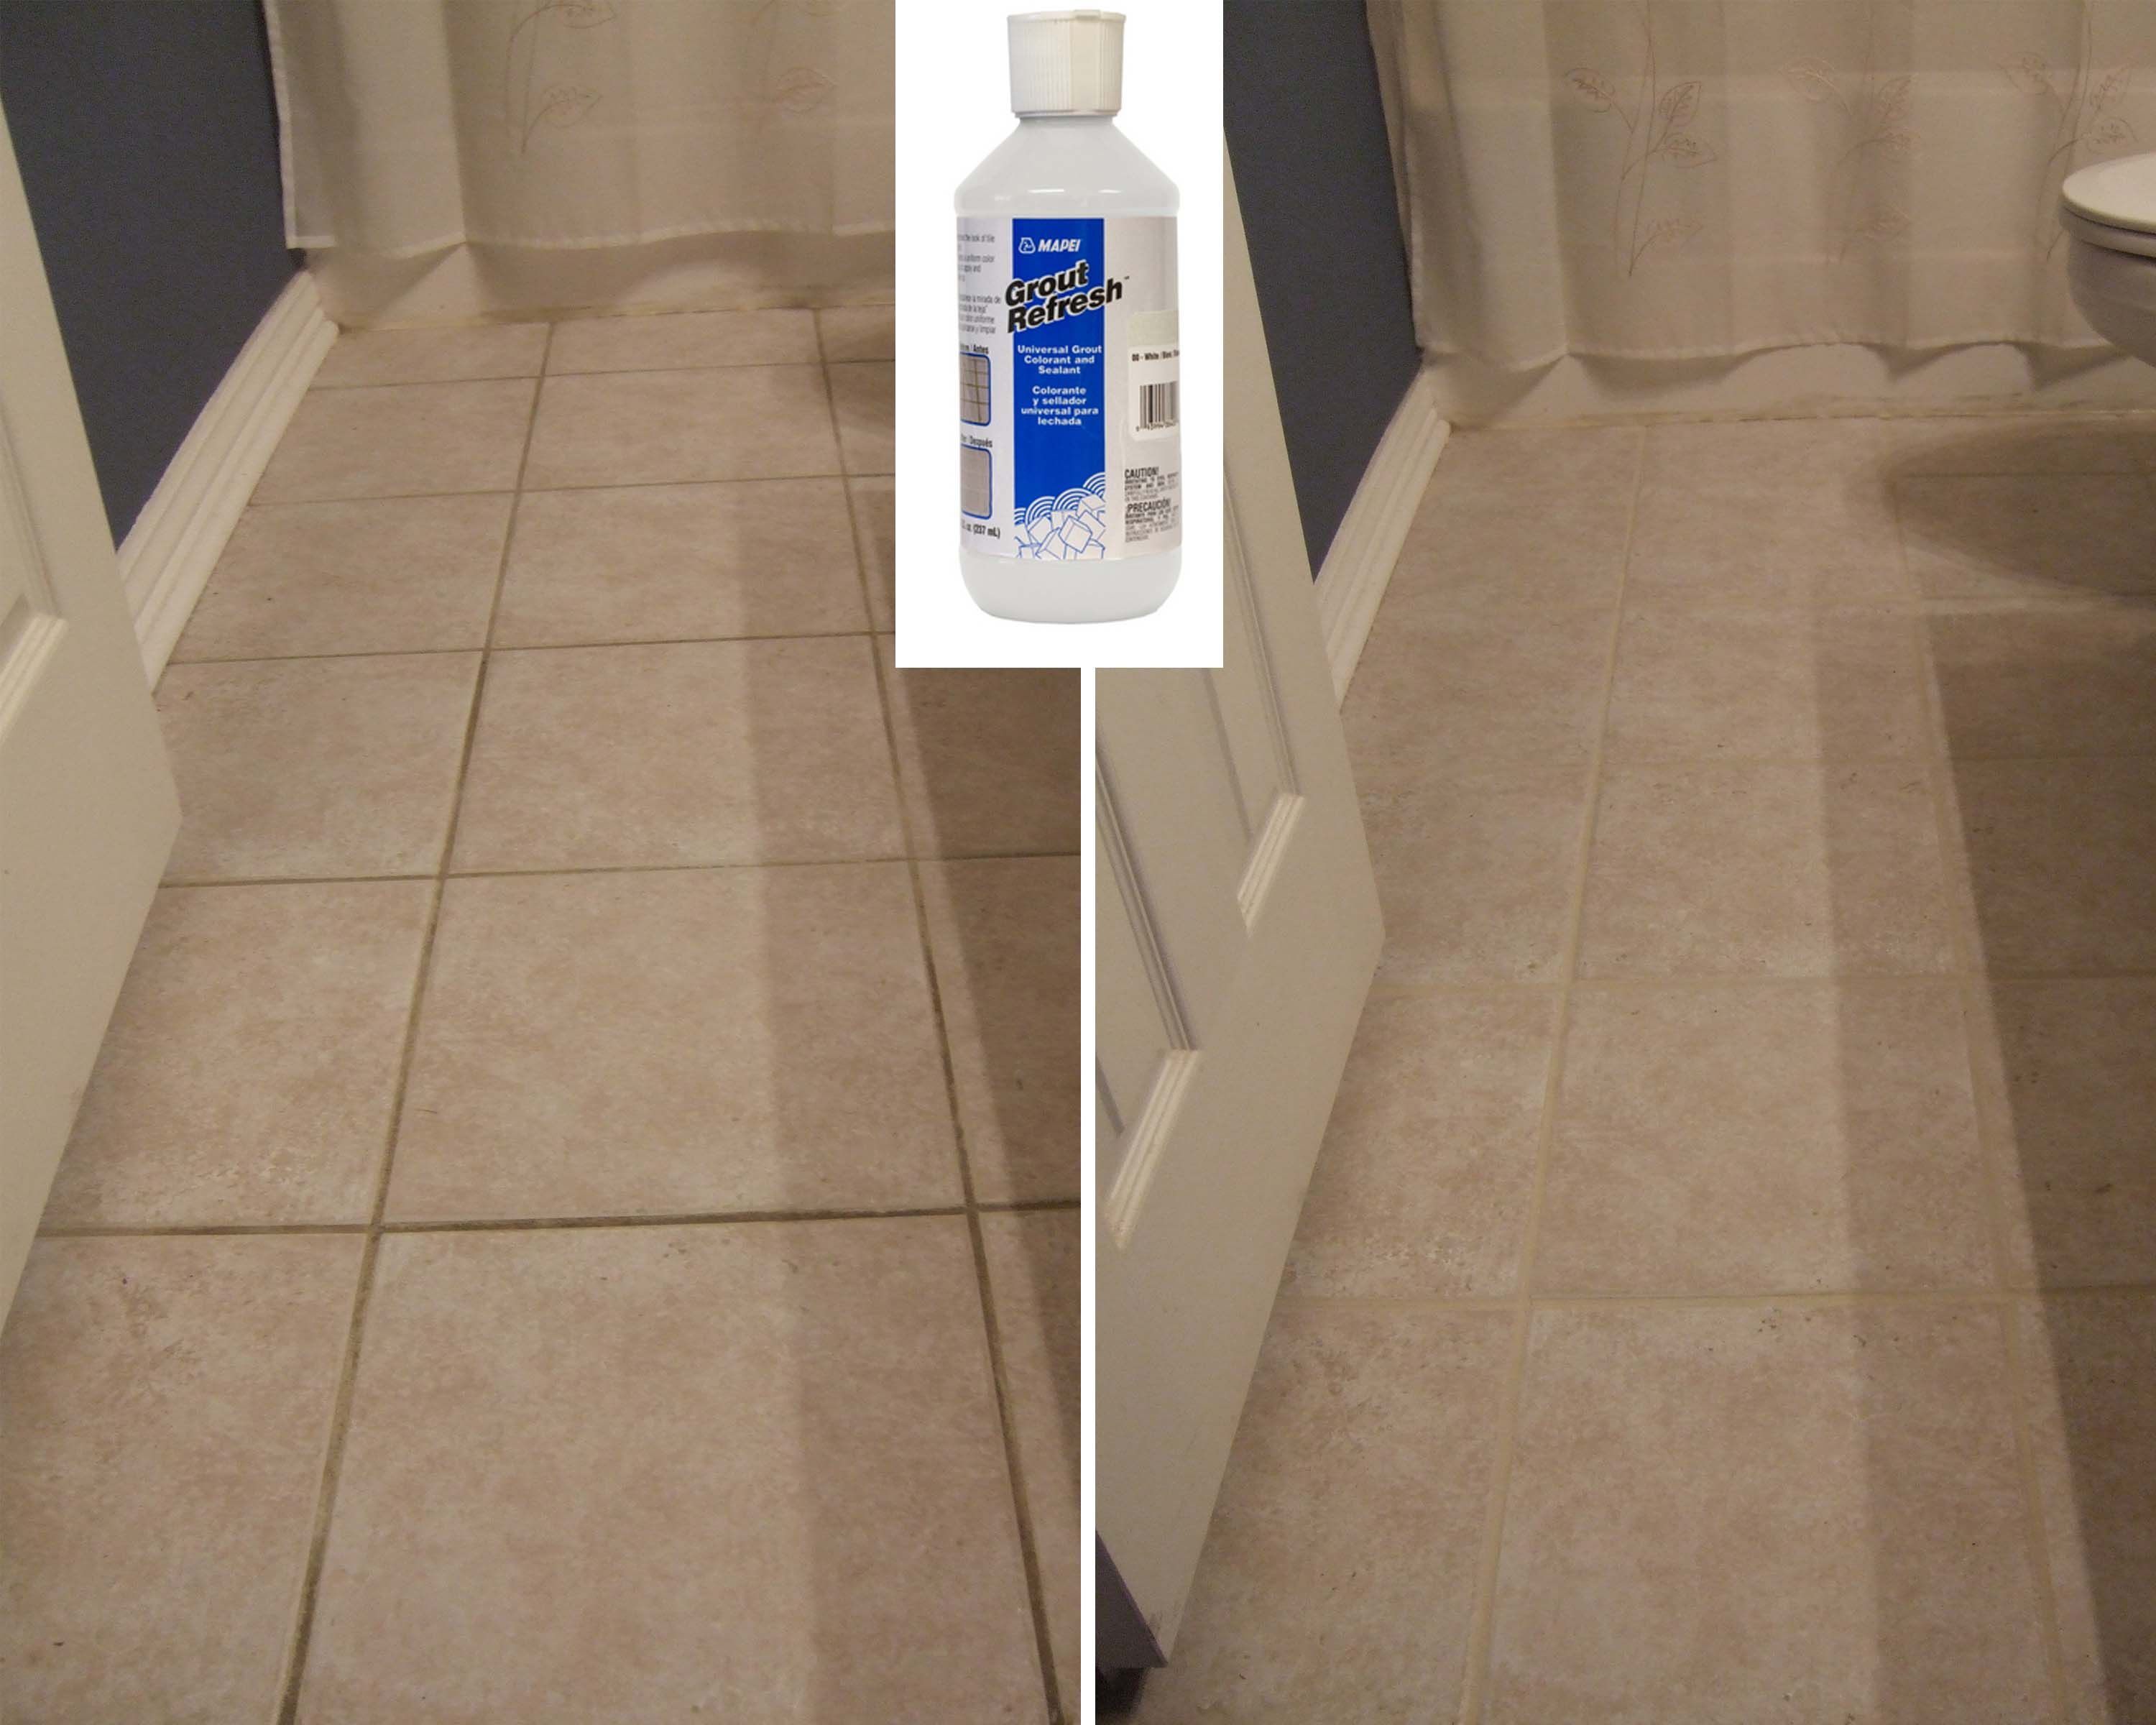 How to clean grout with peroxide baking soda grout clean how to clean grout with peroxide baking soda dailygadgetfo Images